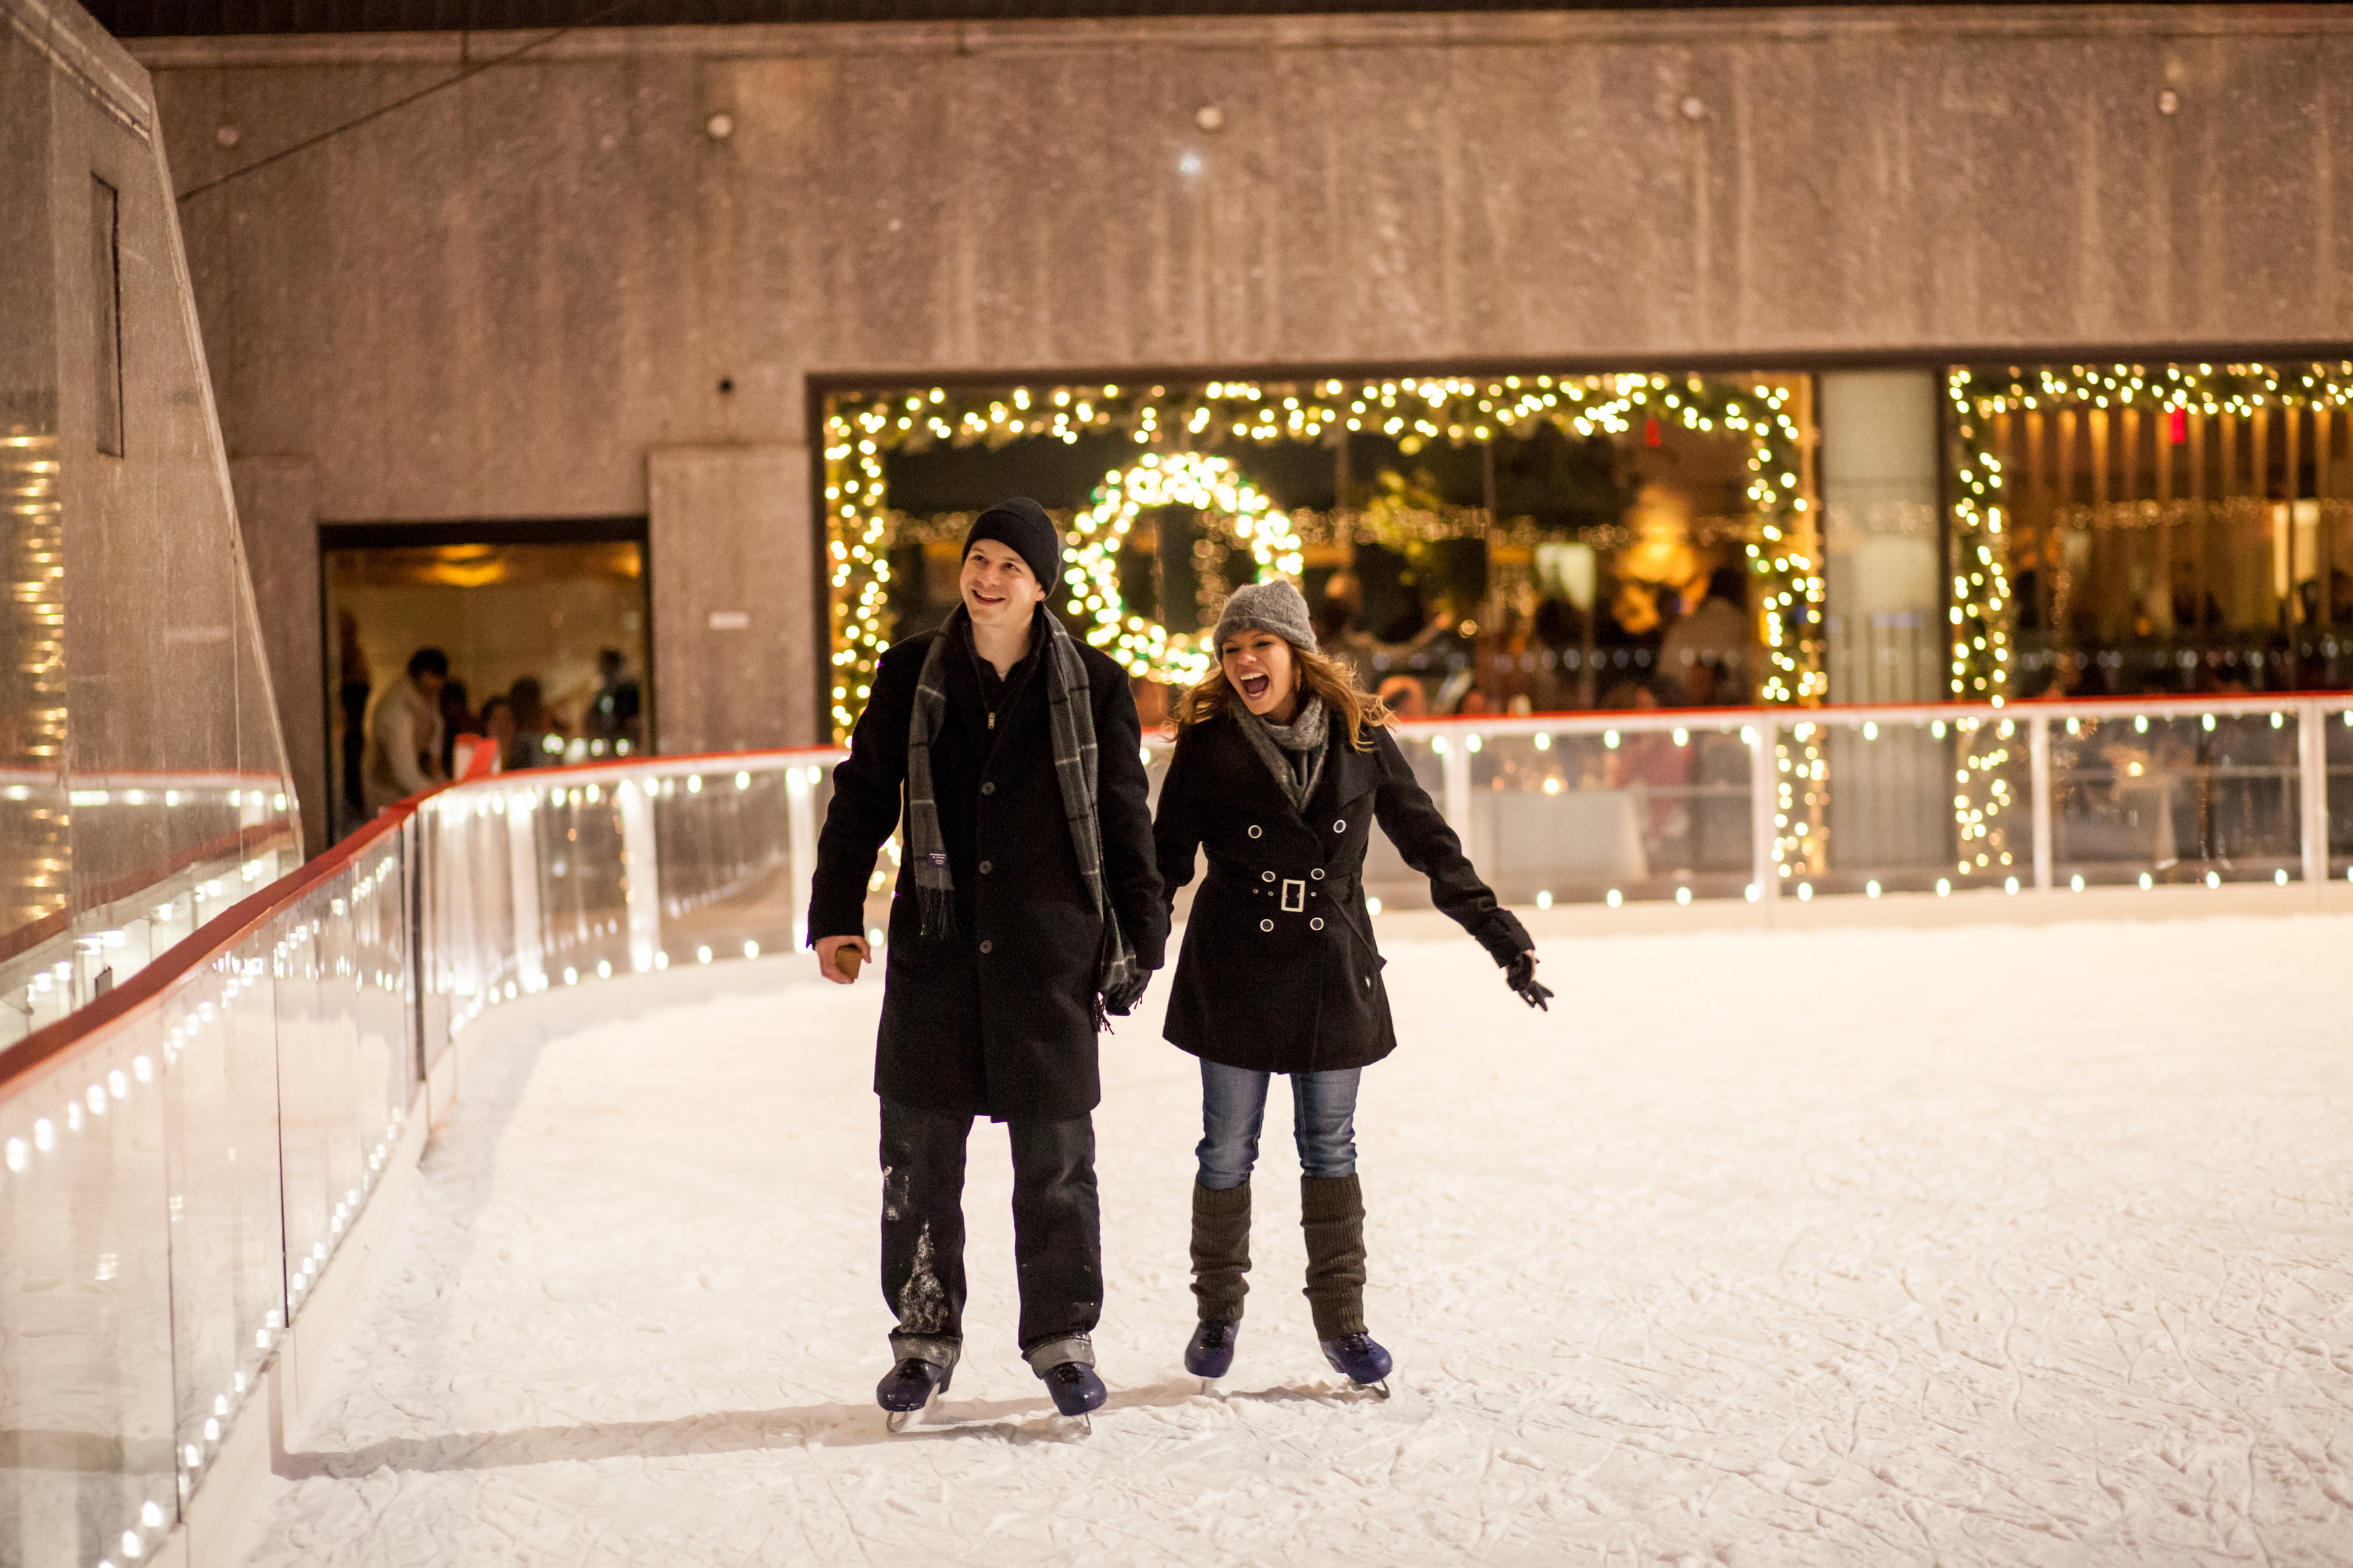 Image 9 of Christmas Day Proposal at Rockefeller Plaza